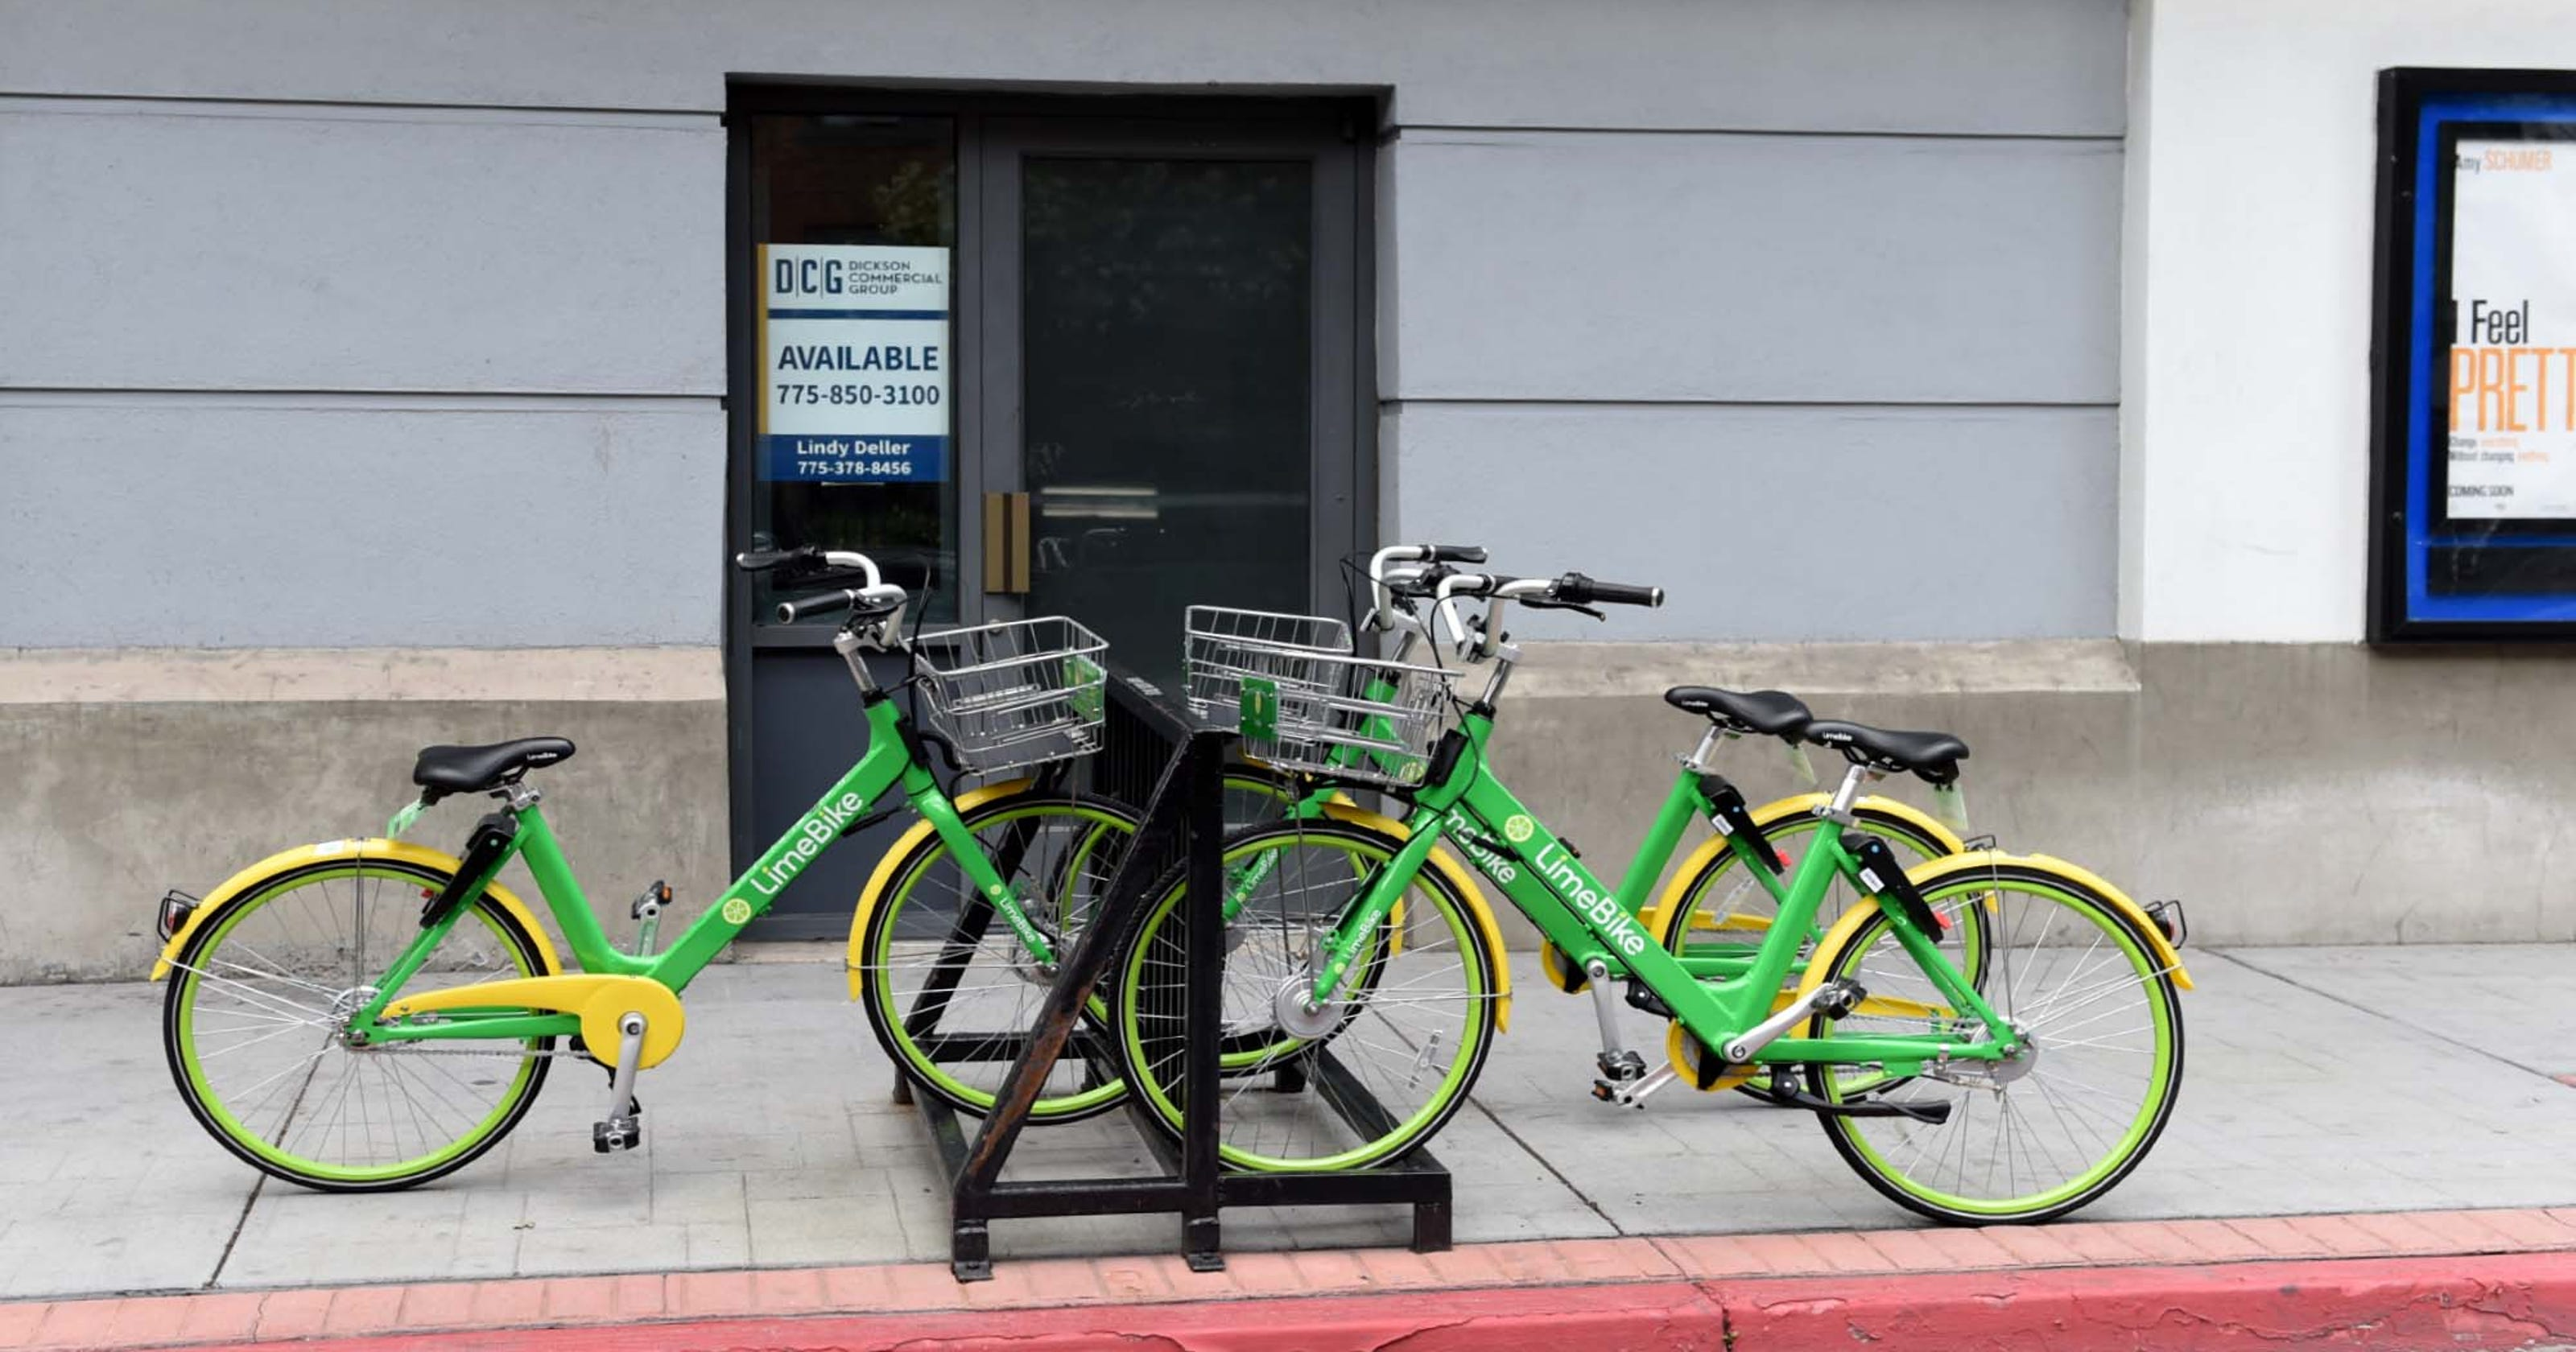 Lime removes electric scooters from Reno after cease and desist